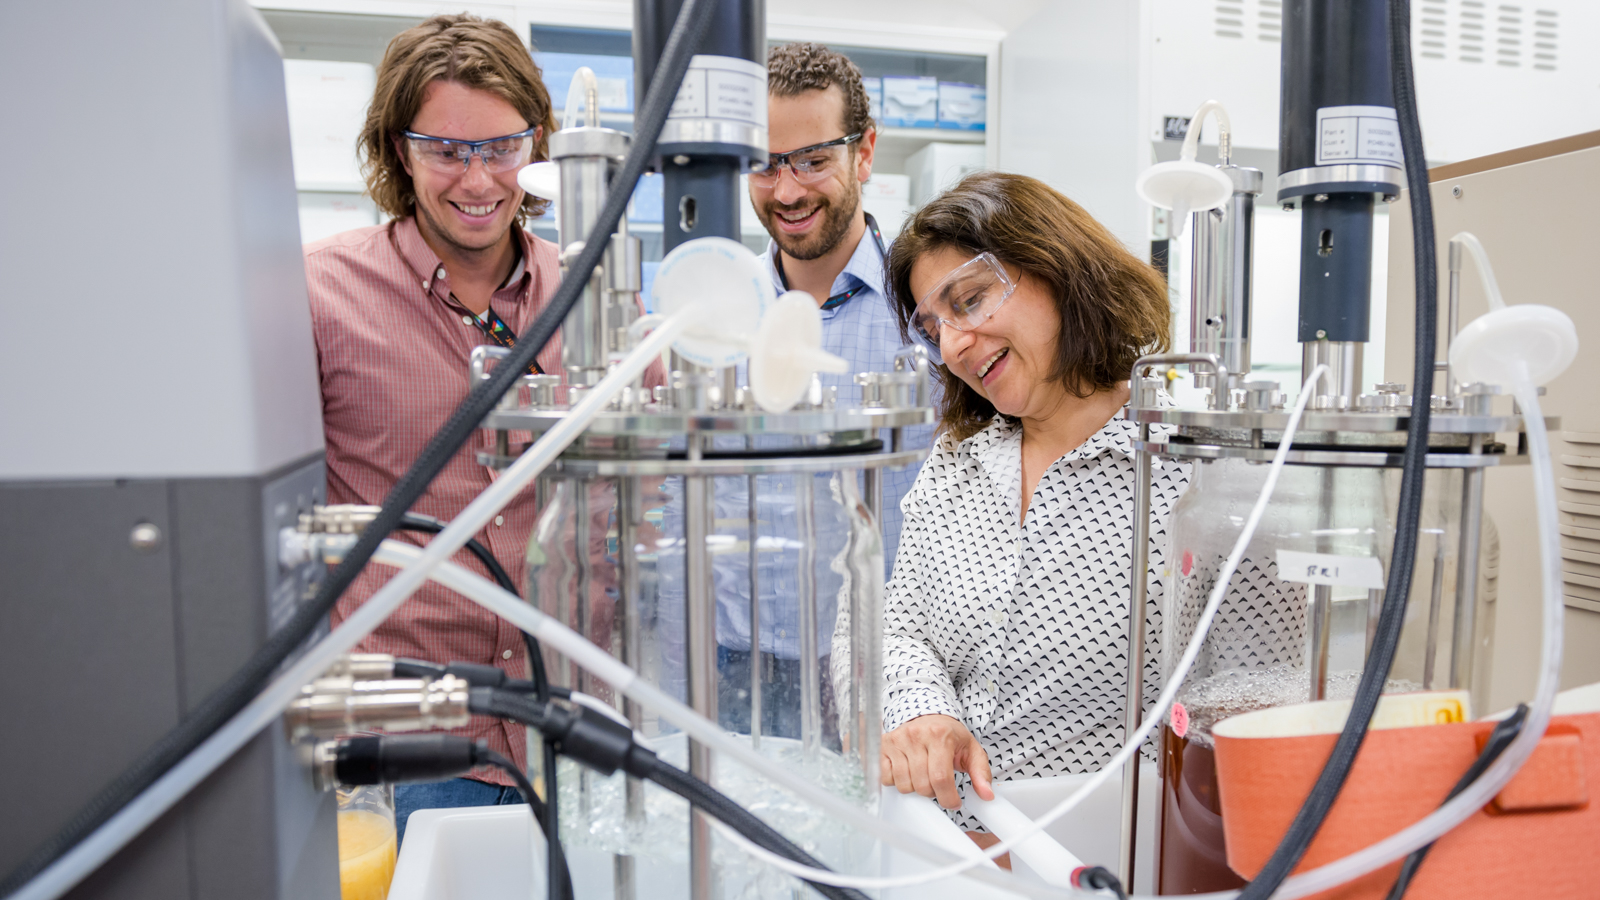 Chain Reaction Innovation entrepreneurs Justin Whiteley and Tyler Huggins work with Argonne scientist Meltem Urgun-Demirtas